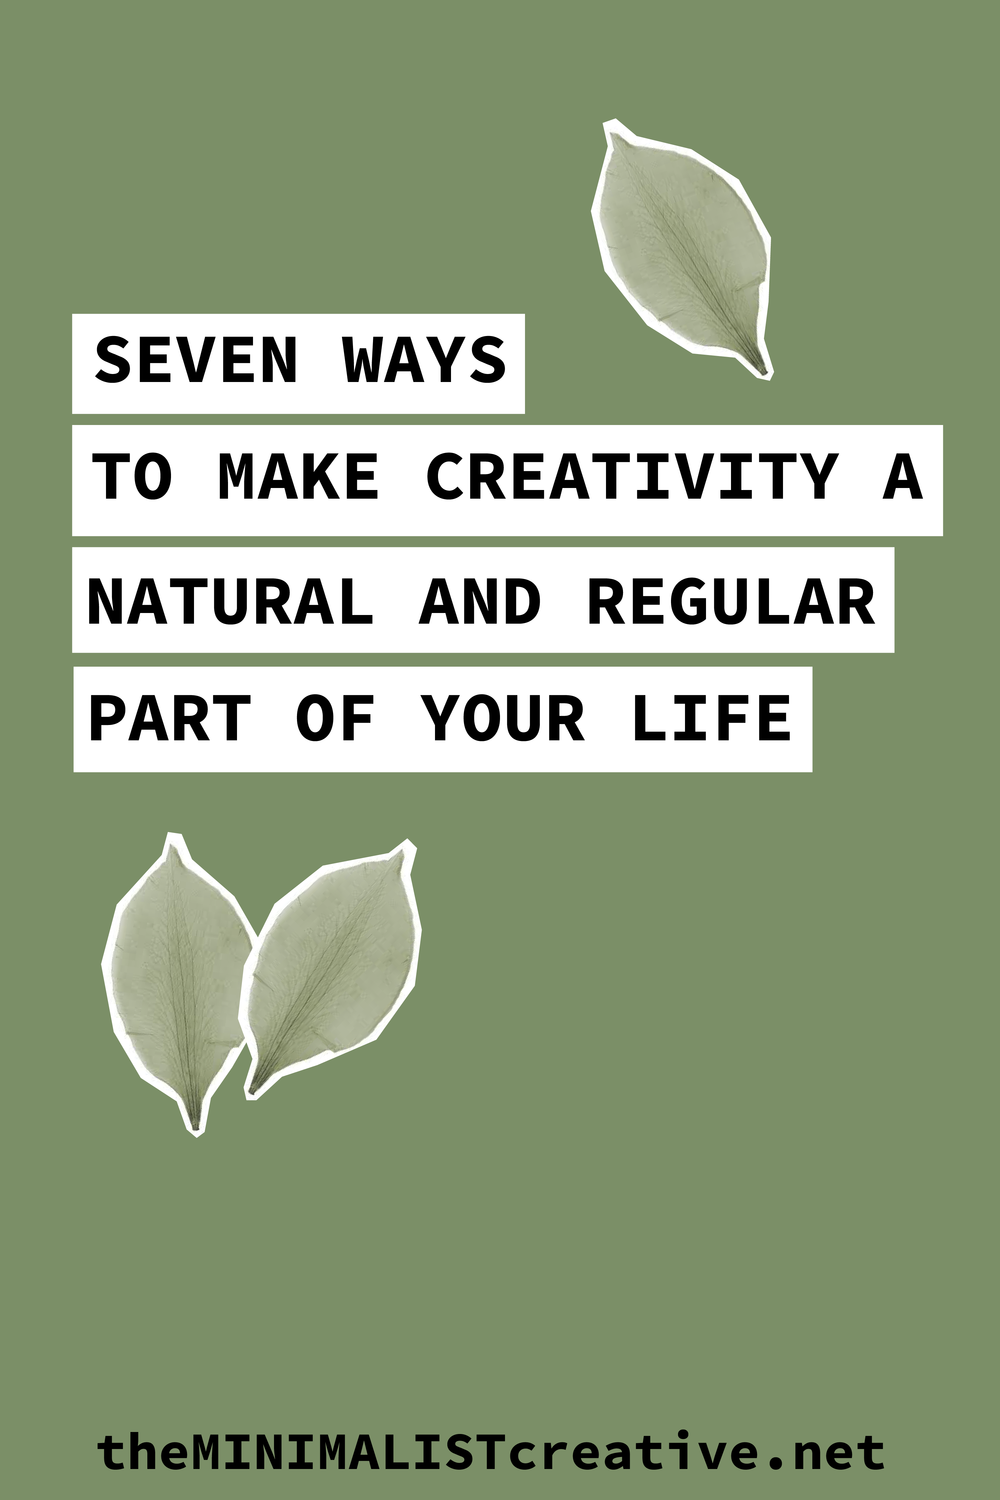 Seven Ways To Make Creativity A Natural And Regular Part Of Your Life